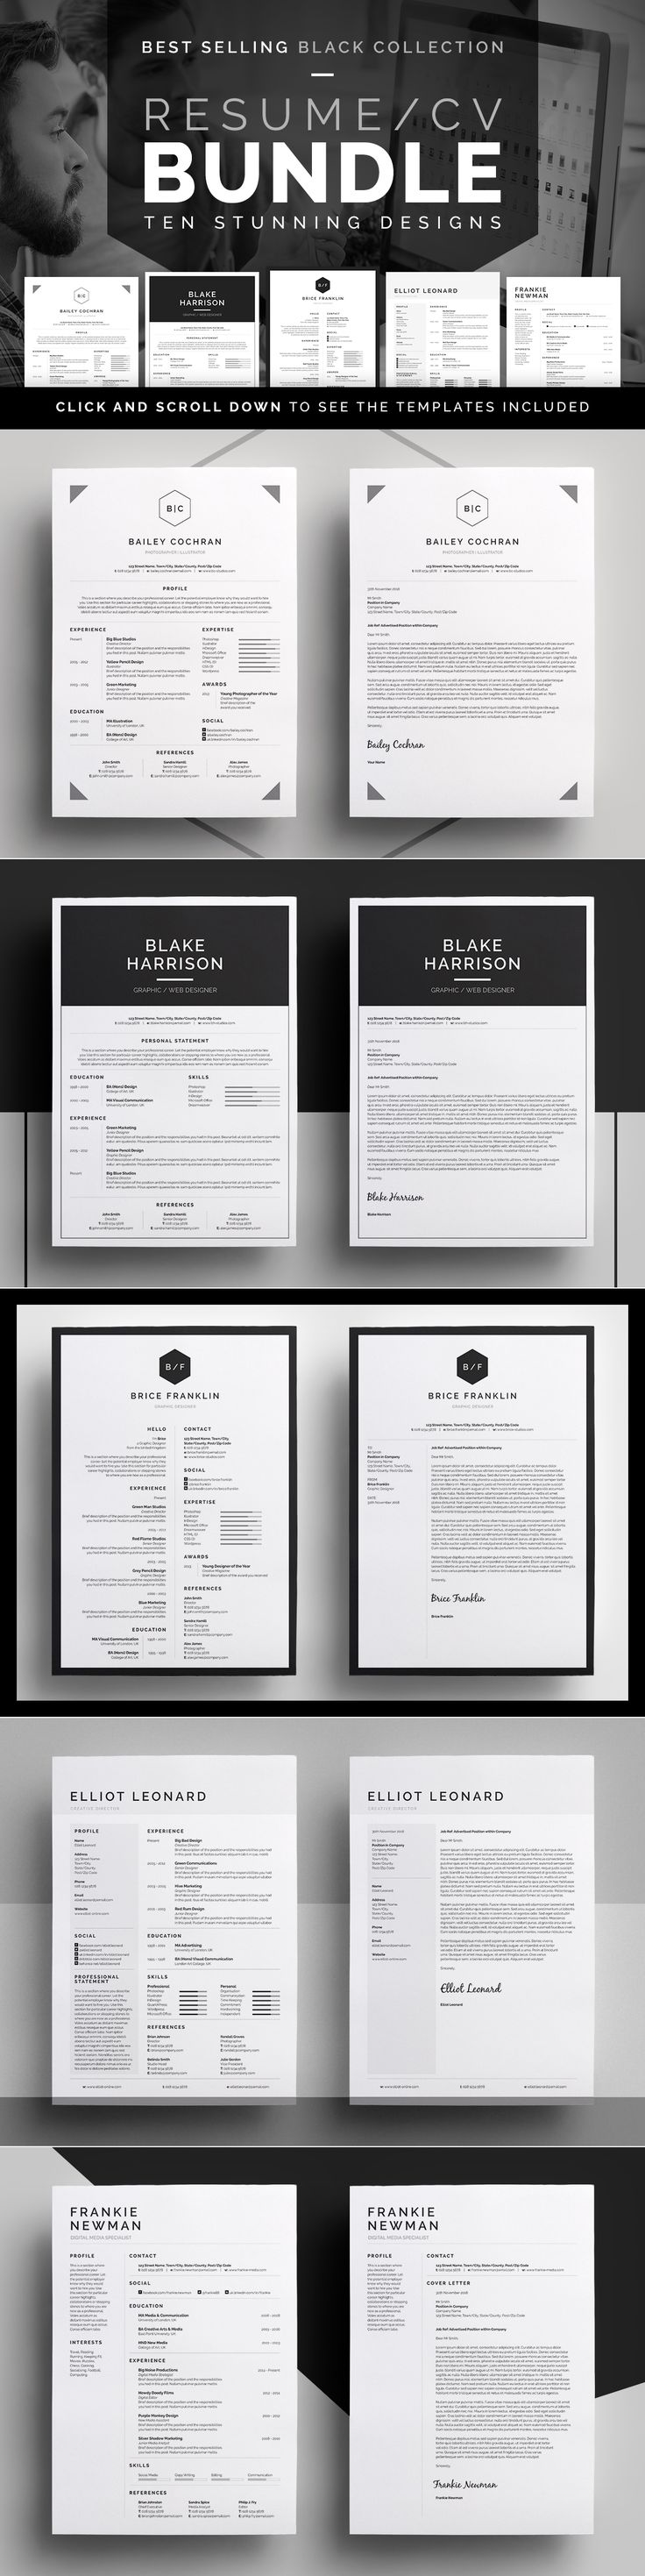 Resume/CV Bundle - 10 Modern, Professional designs with Matching Cover letters & Business cards. Easy edit templates. Black Collection by bilmaw creative on Creative Market